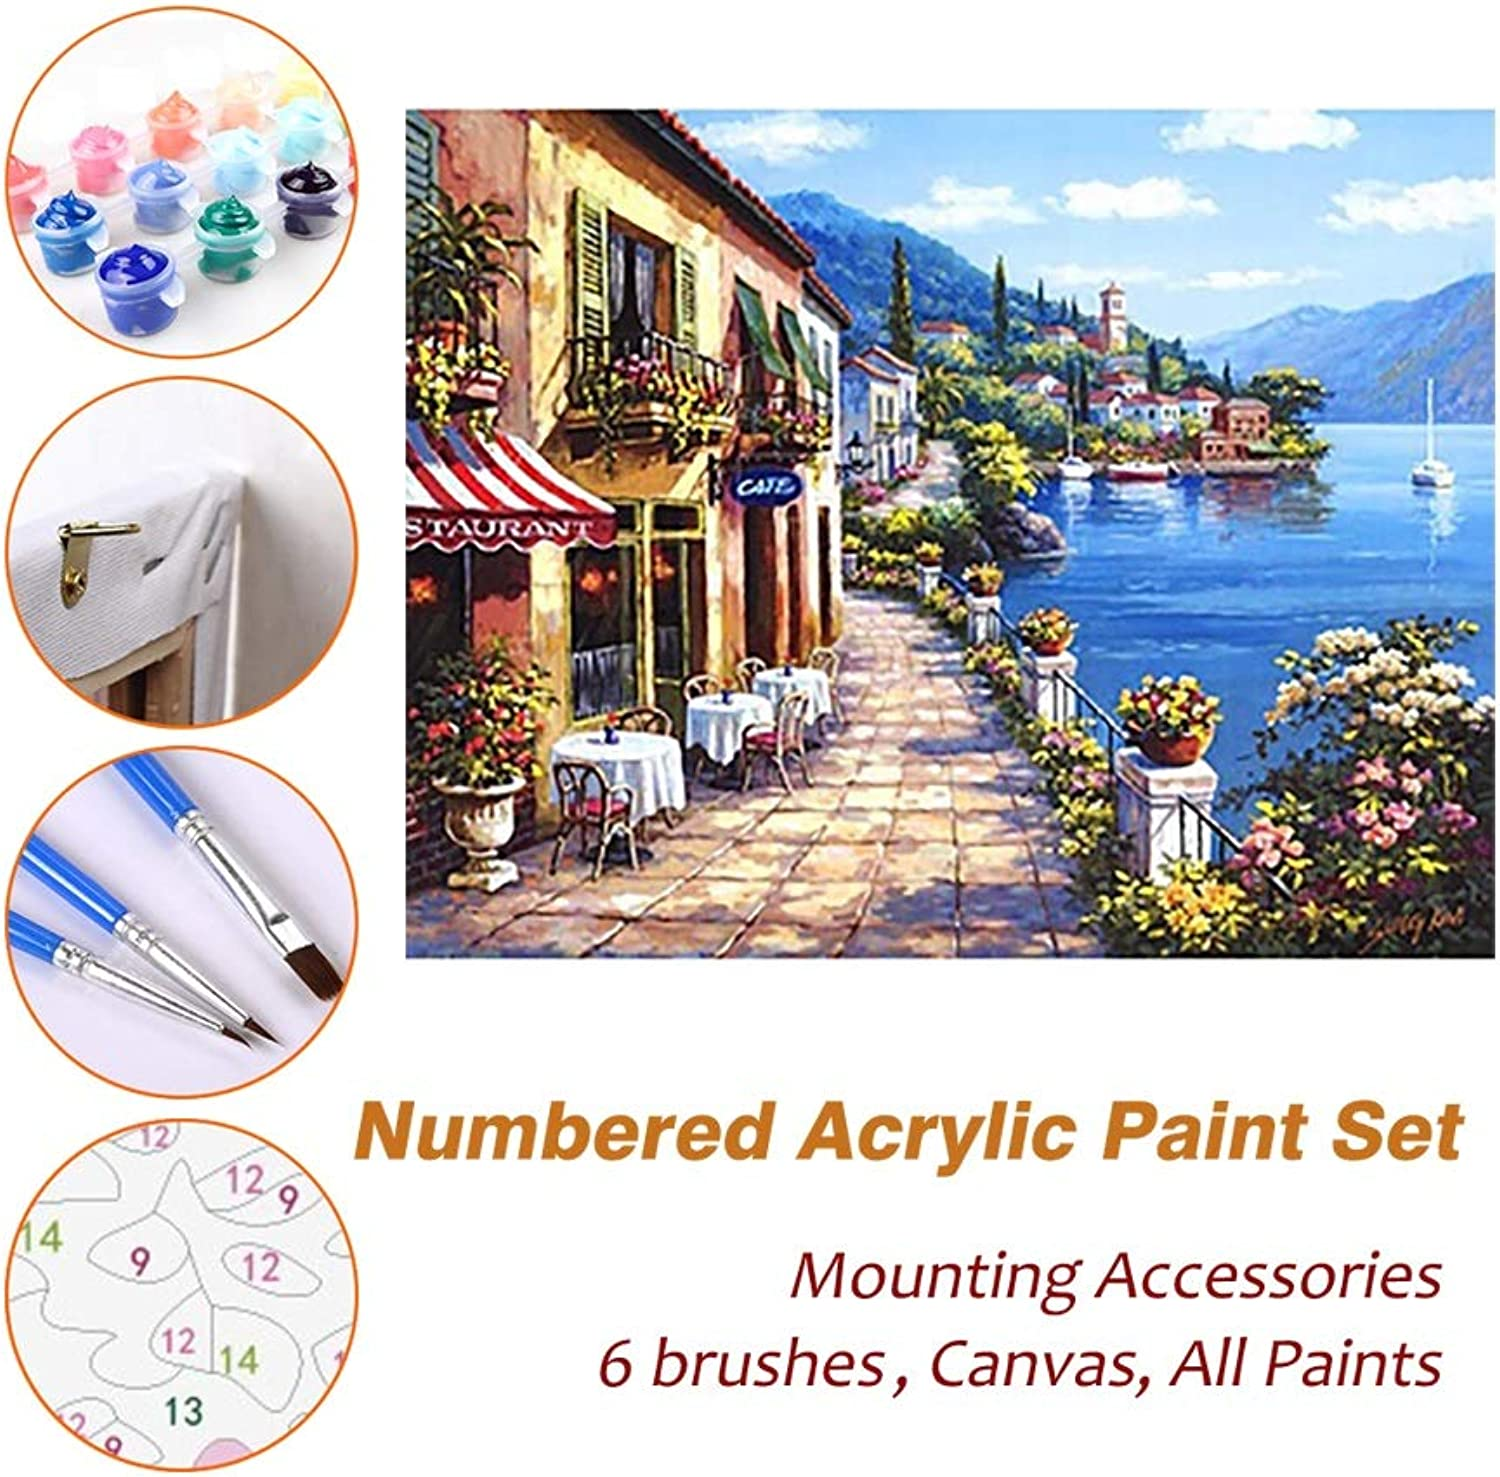 Puzzle House Paint Max Paint By Numbers Kits For Kids Adults Beginner Teens Pine Framed DIY Oil Acrylic Painting Paint Art Brush Sets, White Tables Restaurant Beside Sea 602